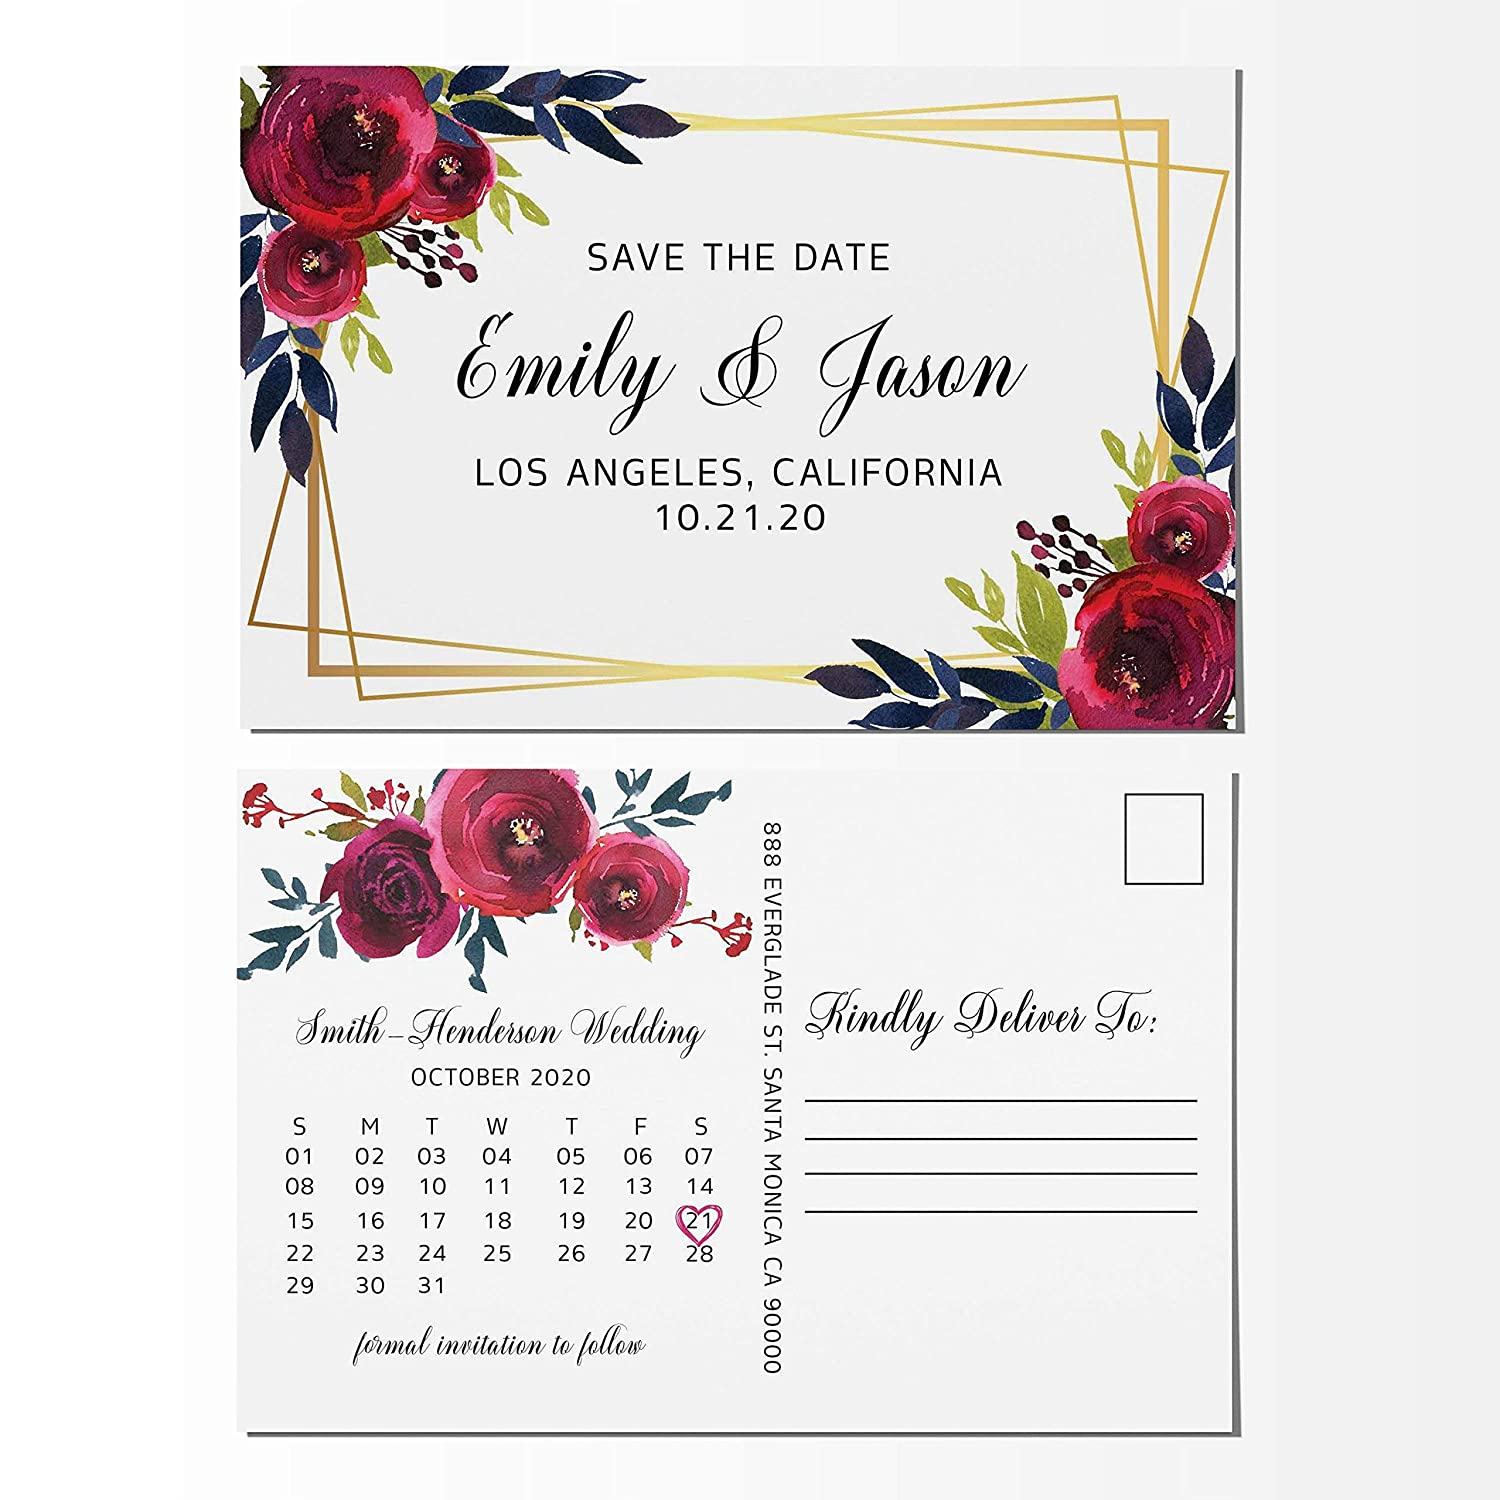 Amazon com: Floral Frame Save the Date Postcards, Calendar